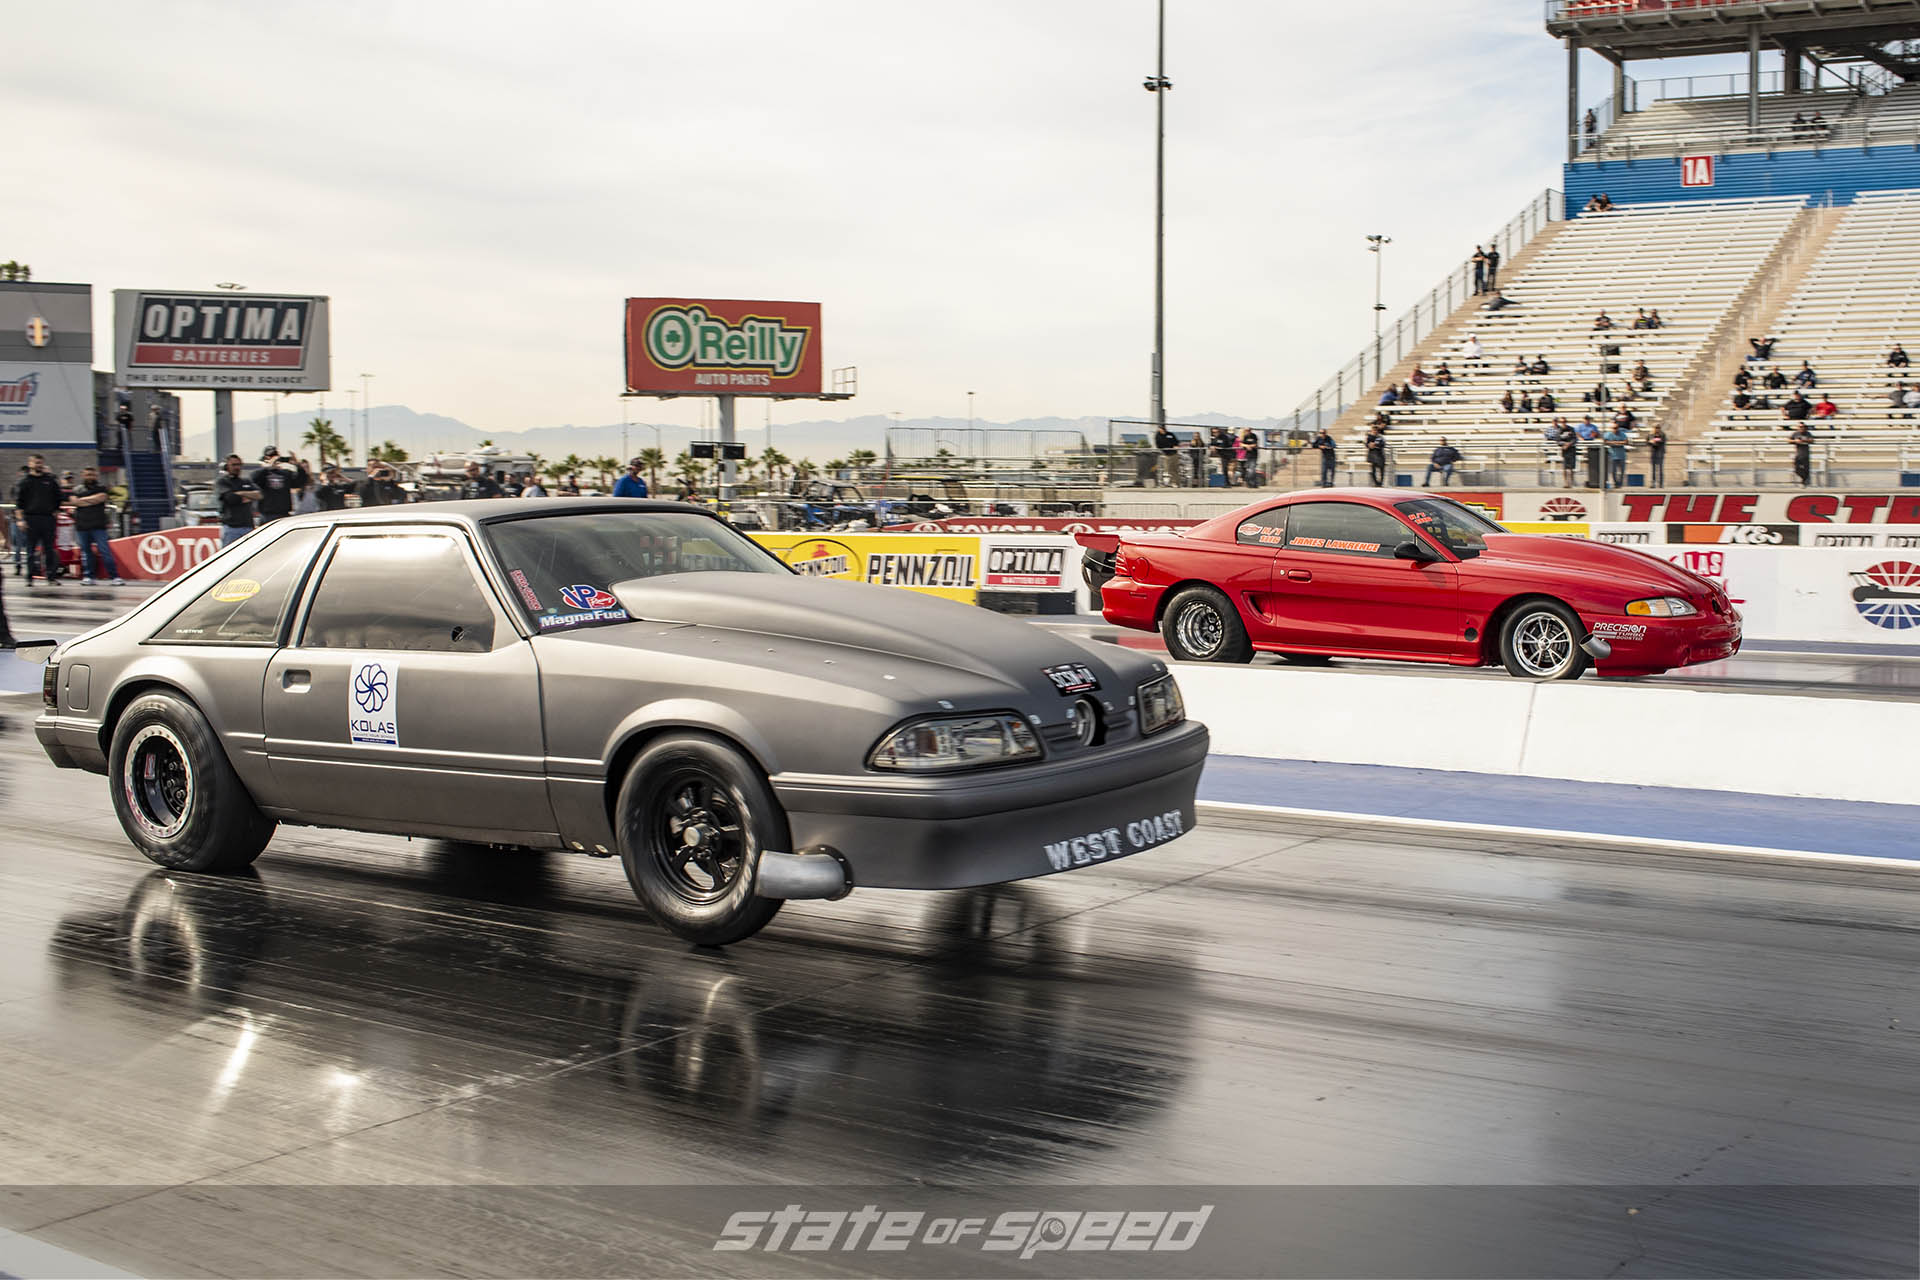 Fox Body Ford Mustang vs Ford Mustang at the dragstrip